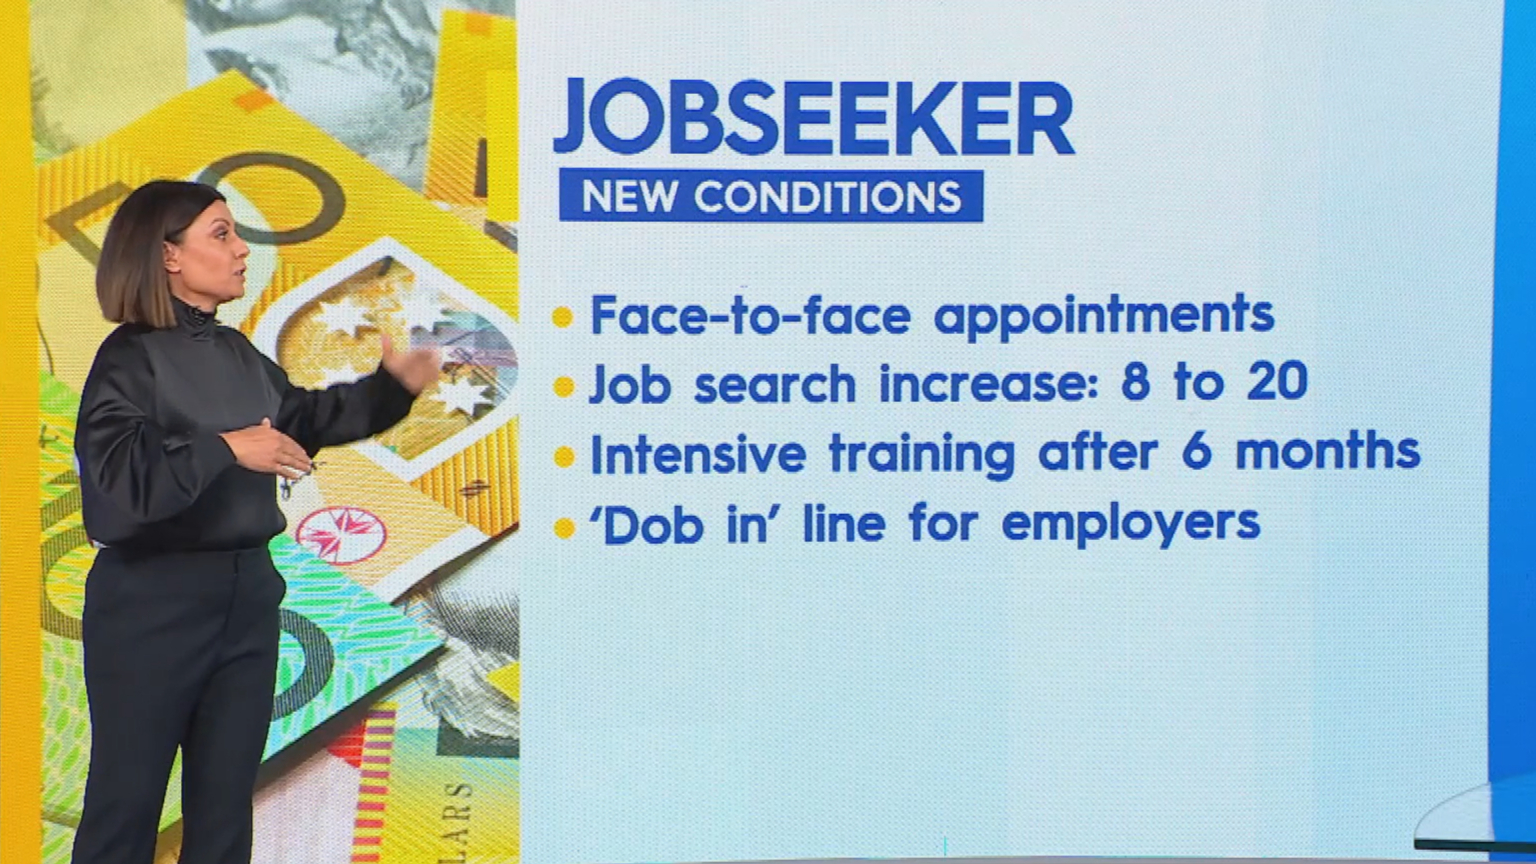 JobSeeker changes explained